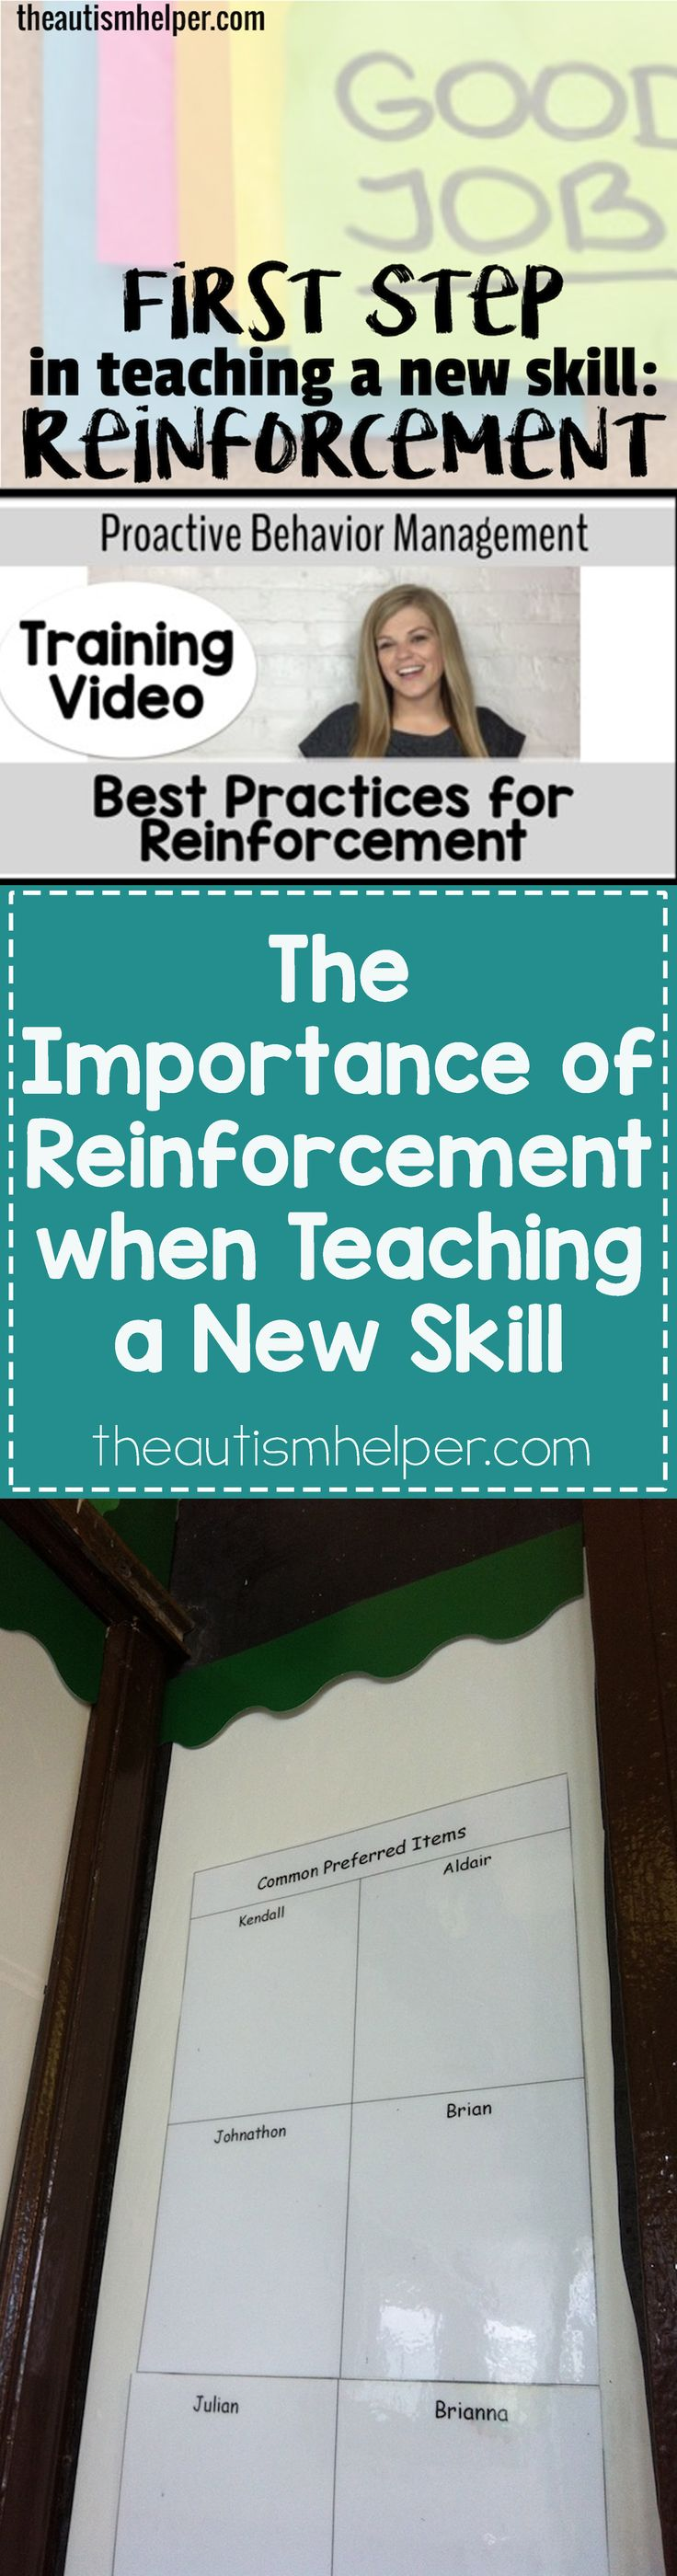 Find out why reinforcement is the crucial first step in teaching a new skill! From theautismhelper.com #theautismhelper